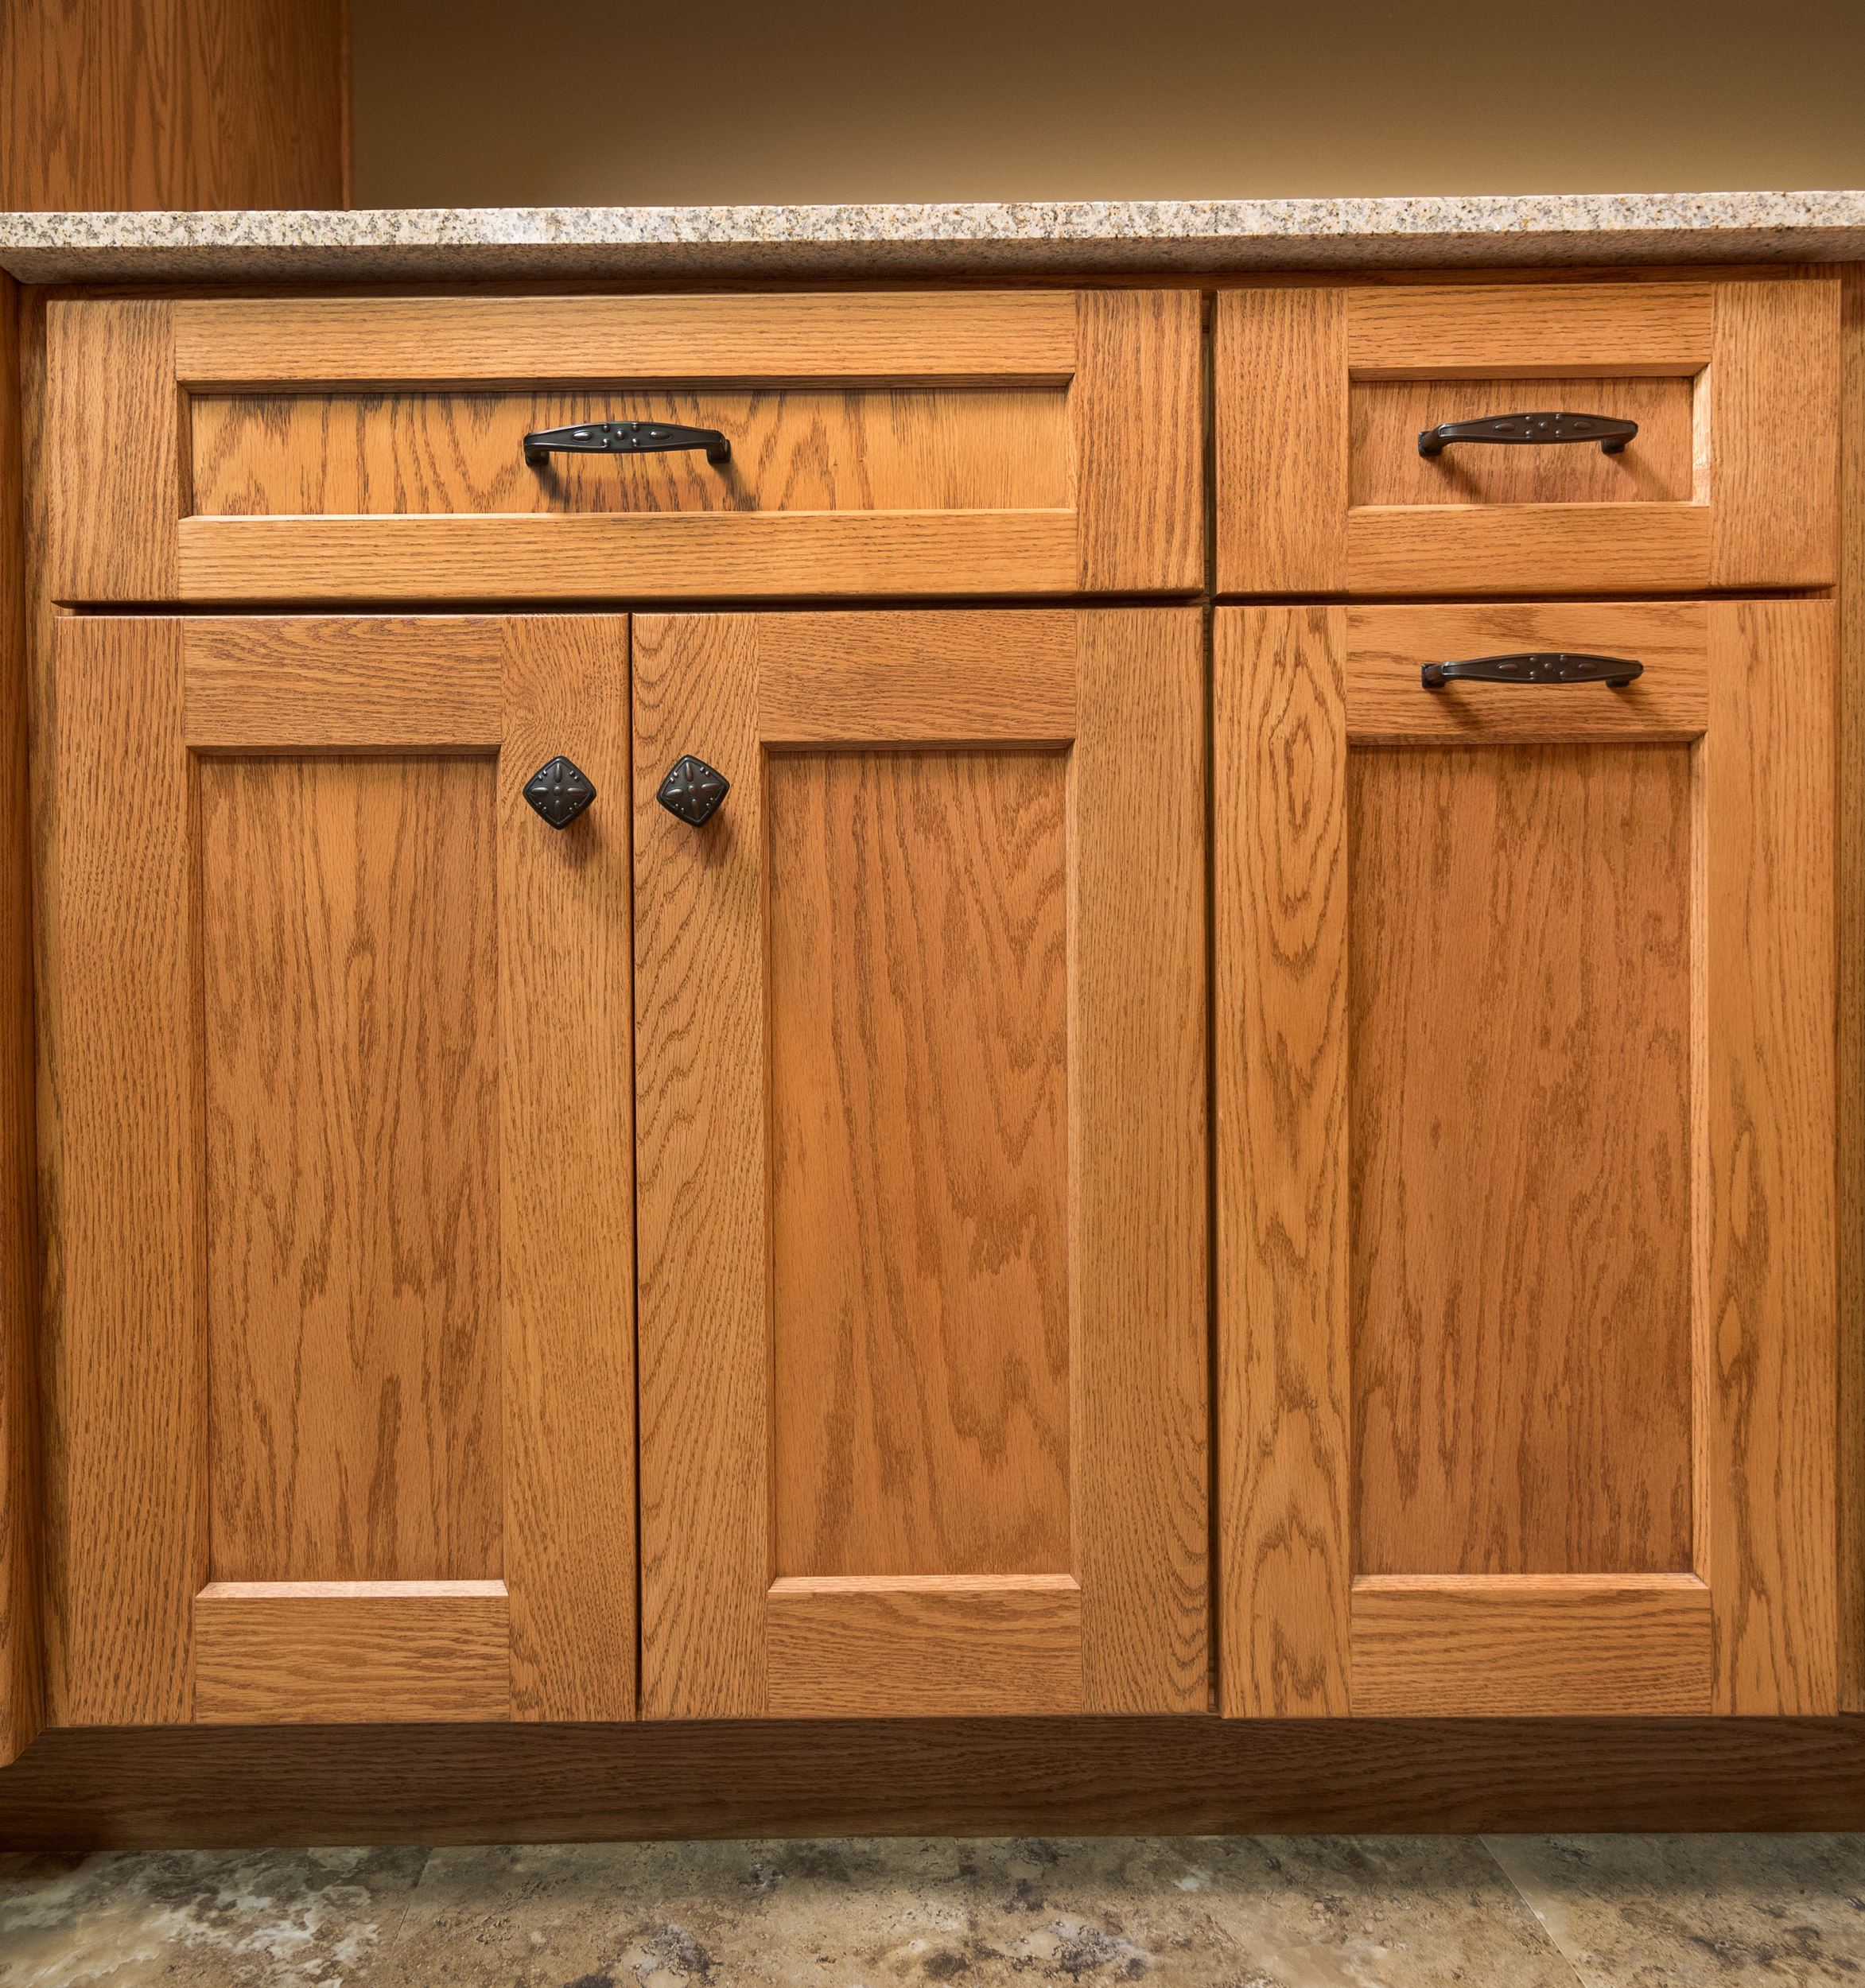 Kitchen Drawers Vs Cabinets: Custom Wood Products